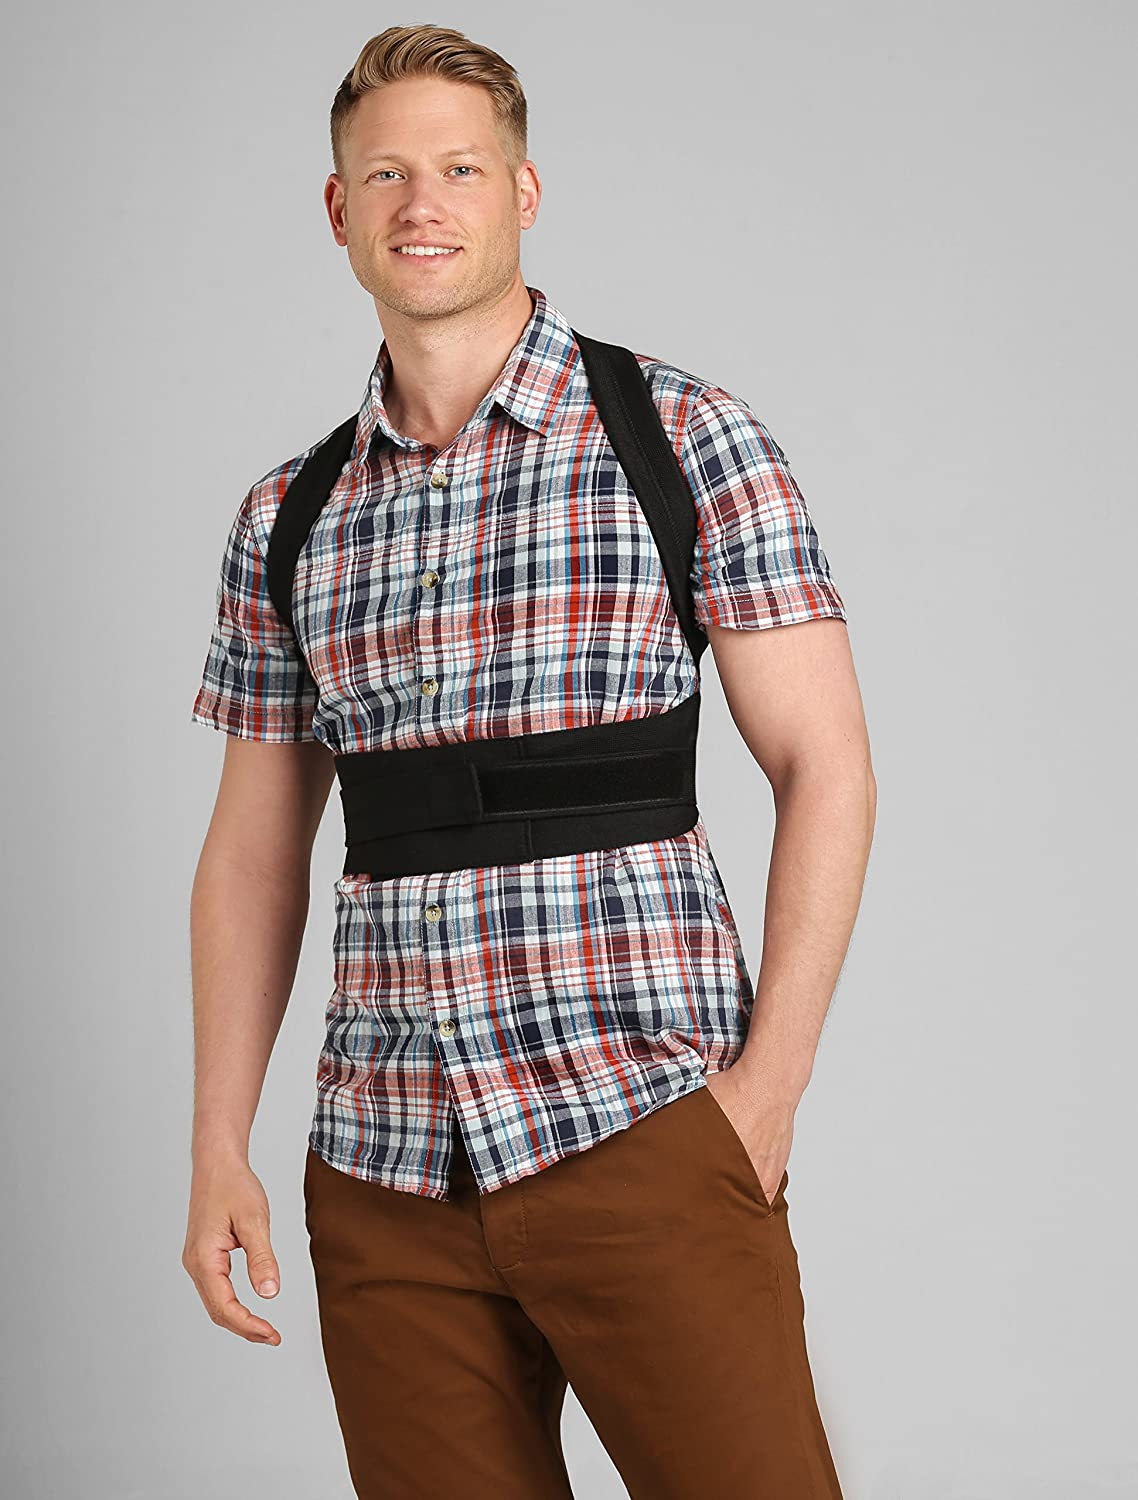 8. BeFit24 USA Back Posture Corrector for Men and Women